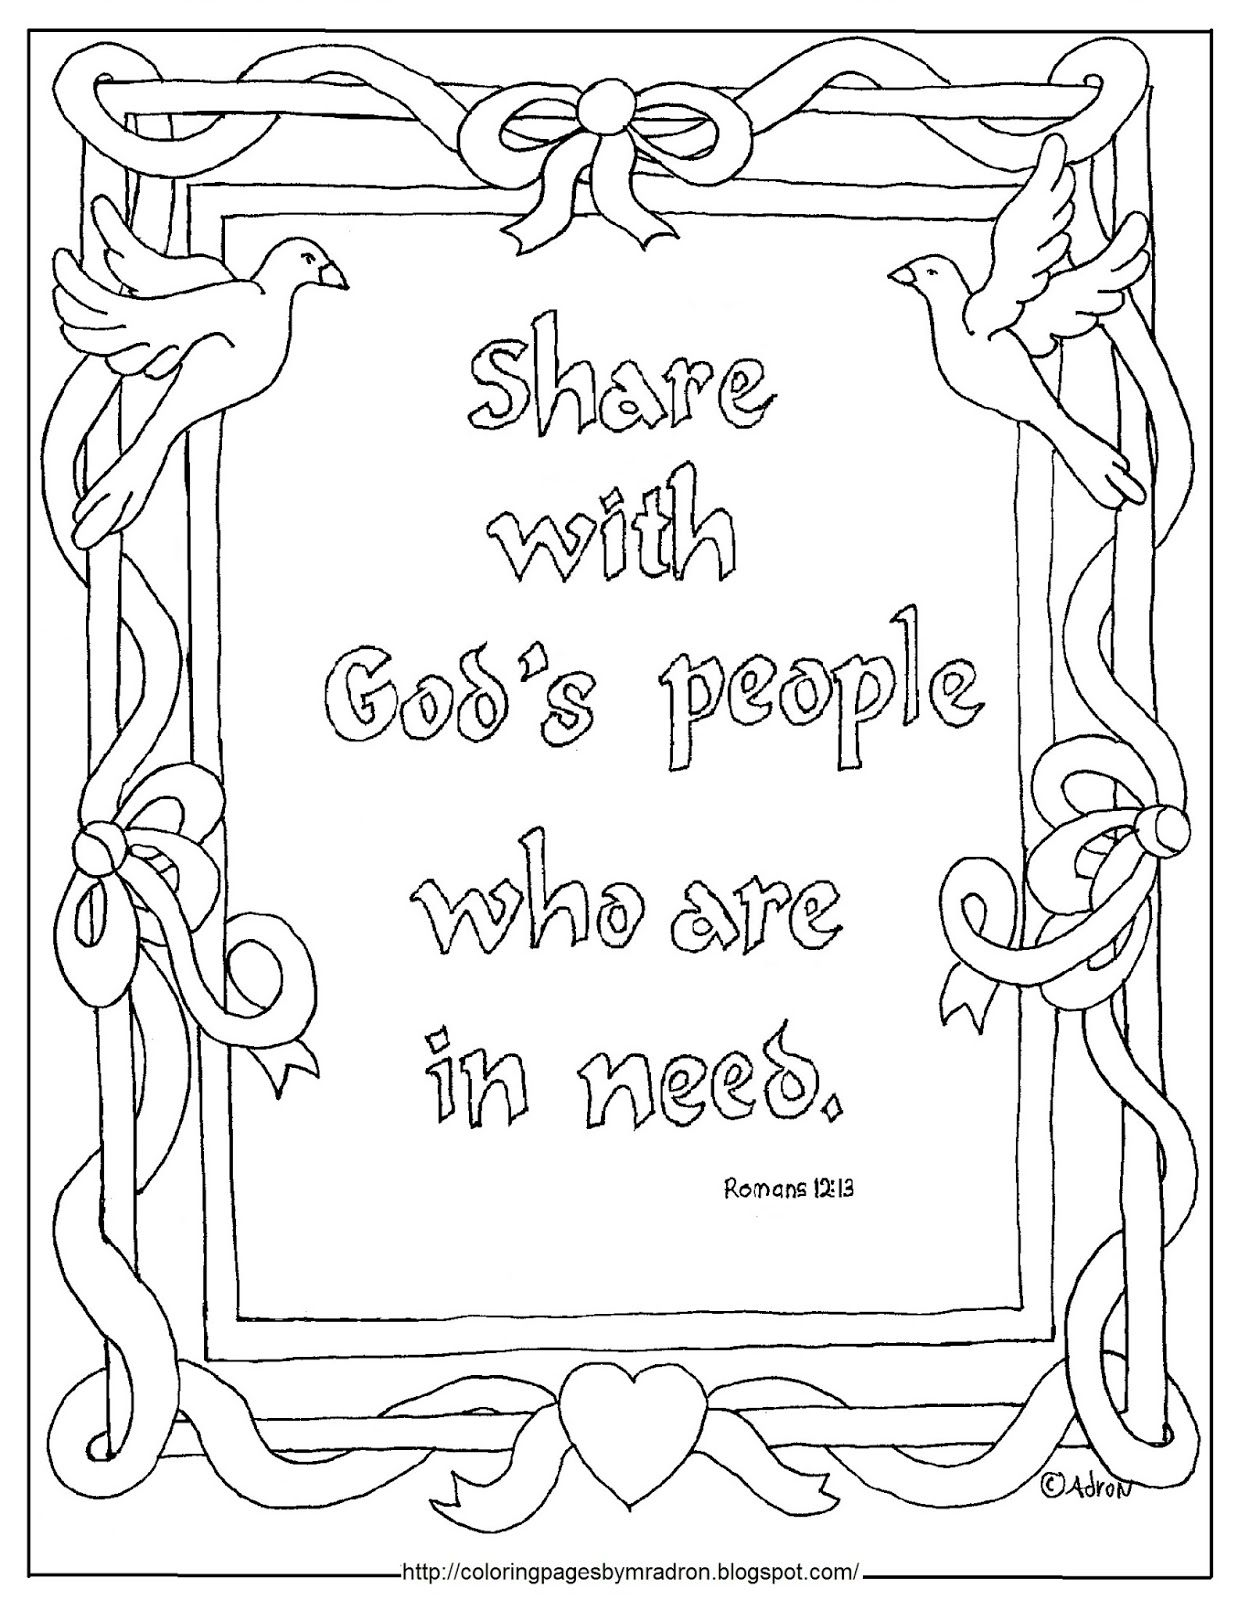 Printable Share With Those In Need Bible Verse Coloring Page